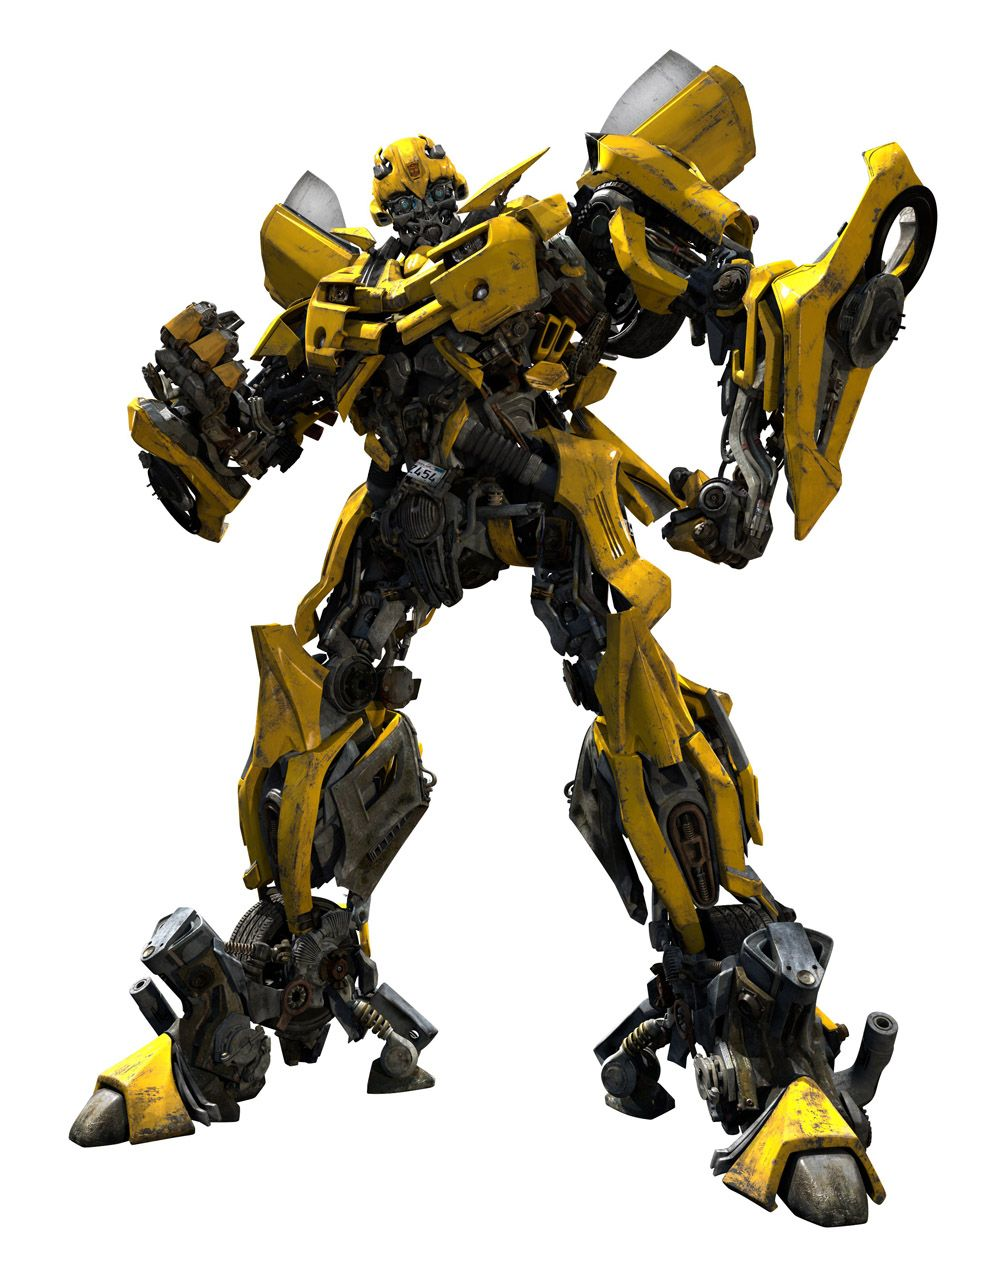 transformers bumblebee the young scout of the autobots